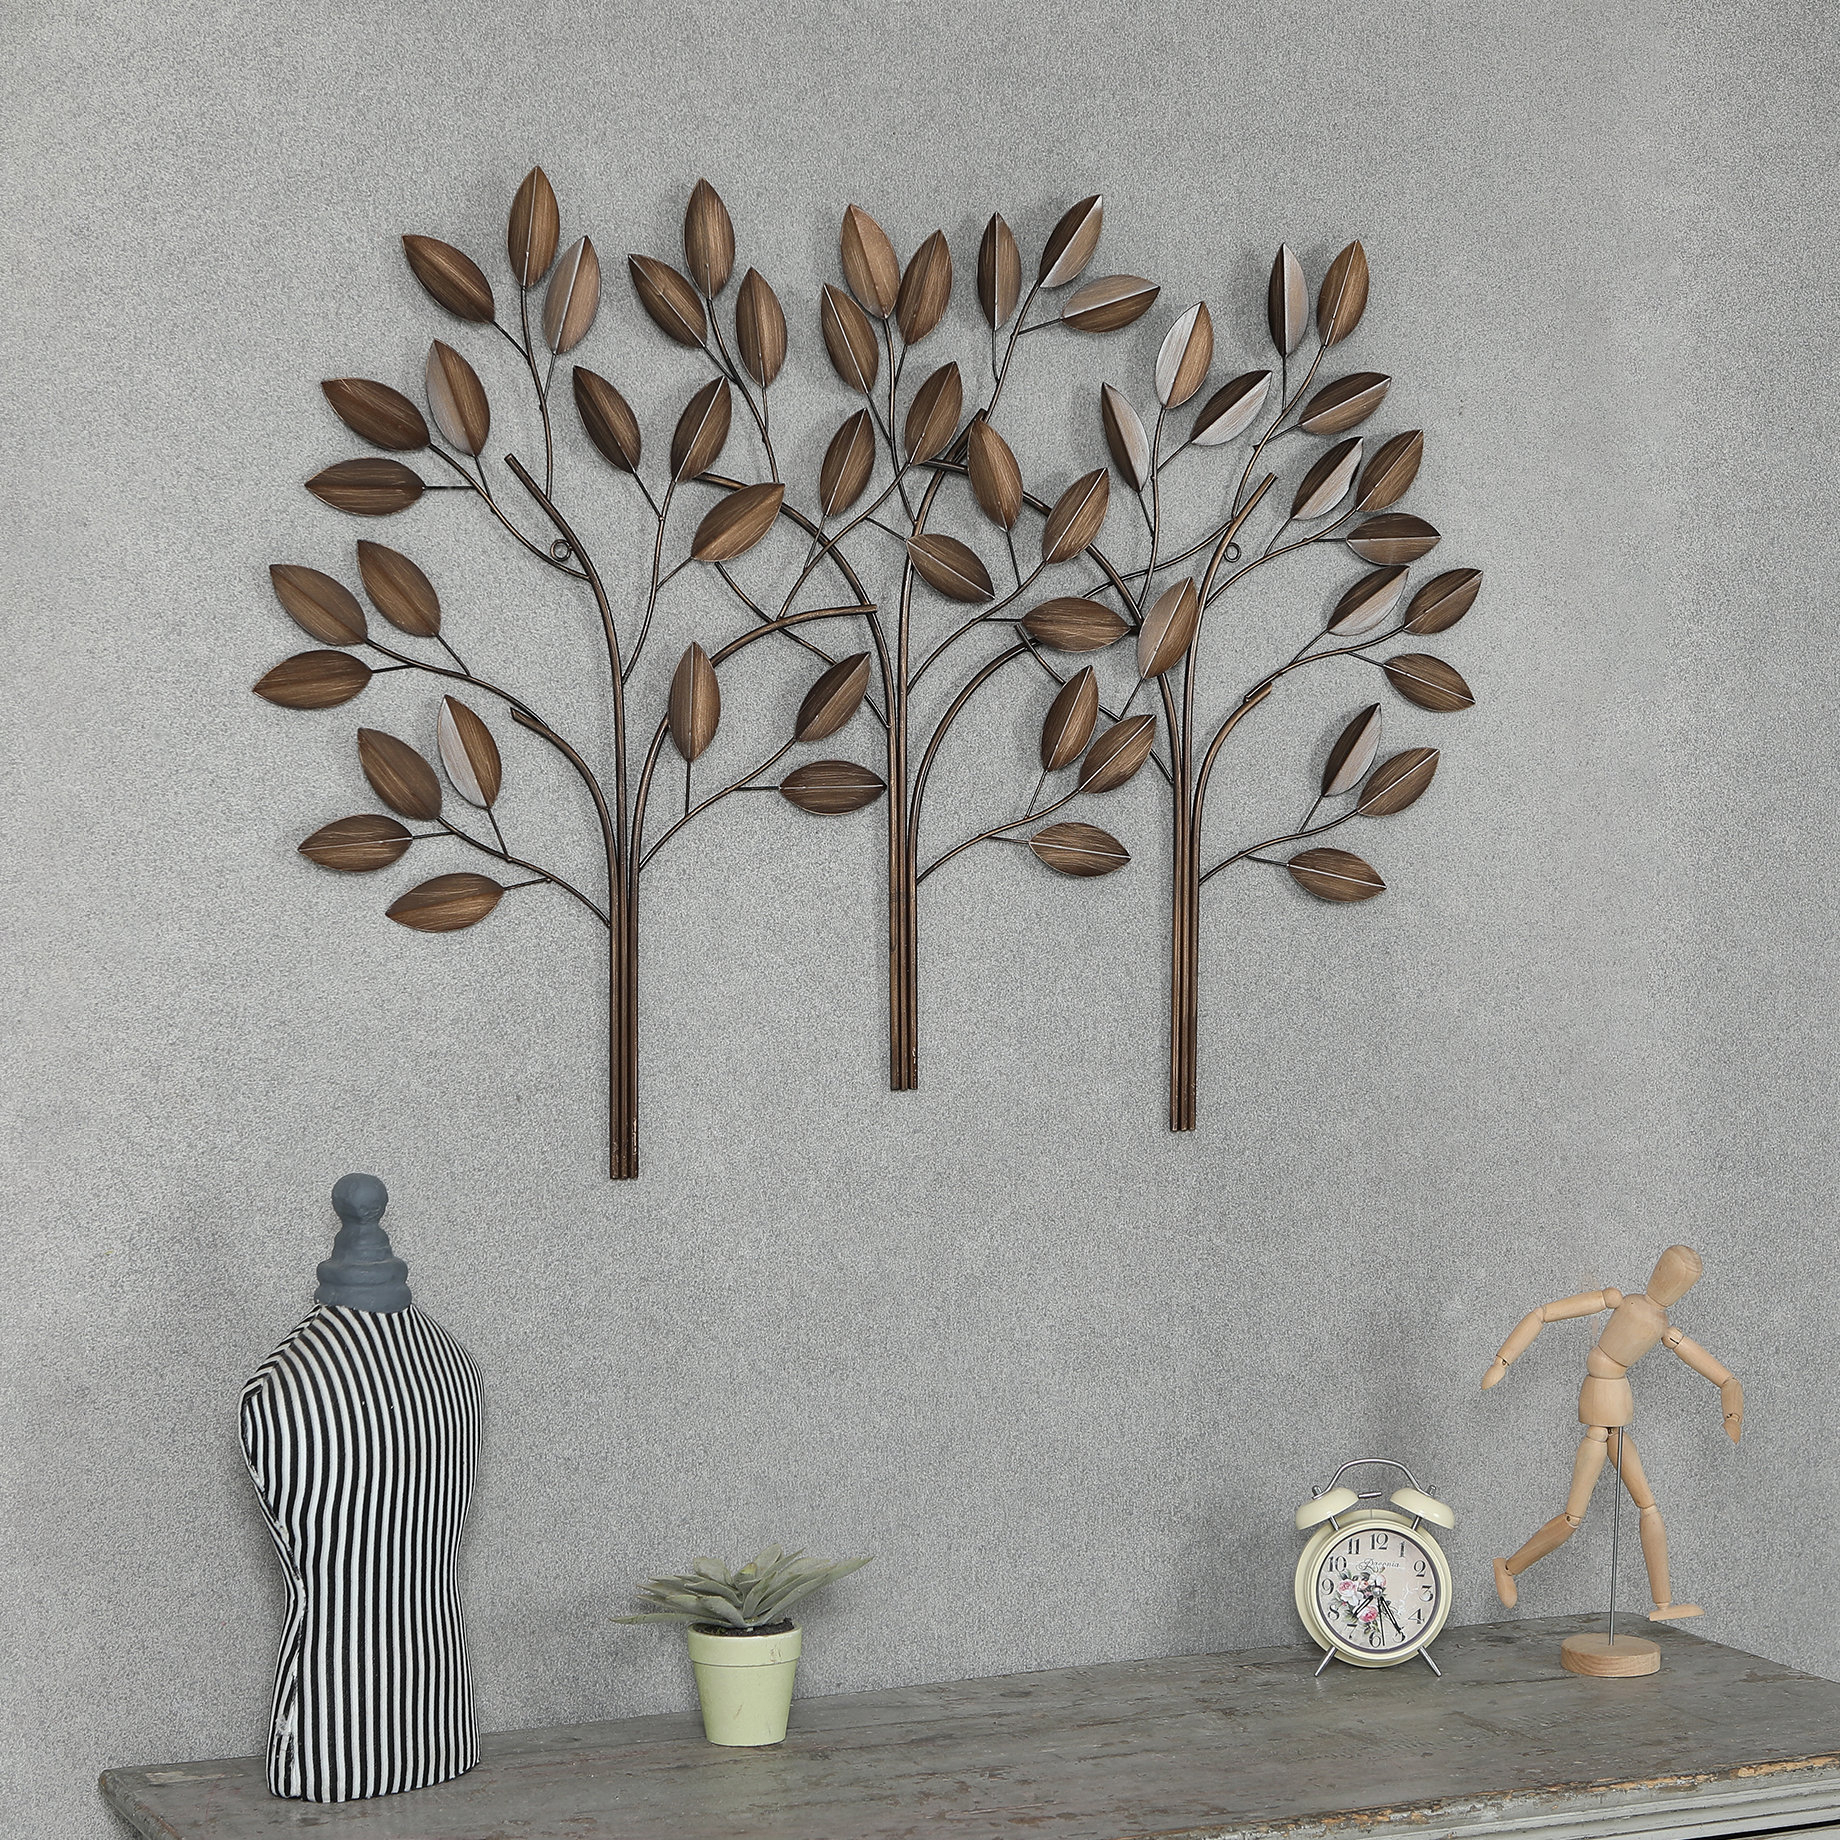 Wayfair Regarding Most Recently Released Leaves Metal Sculpture Wall Decor By Winston Porter (View 14 of 20)